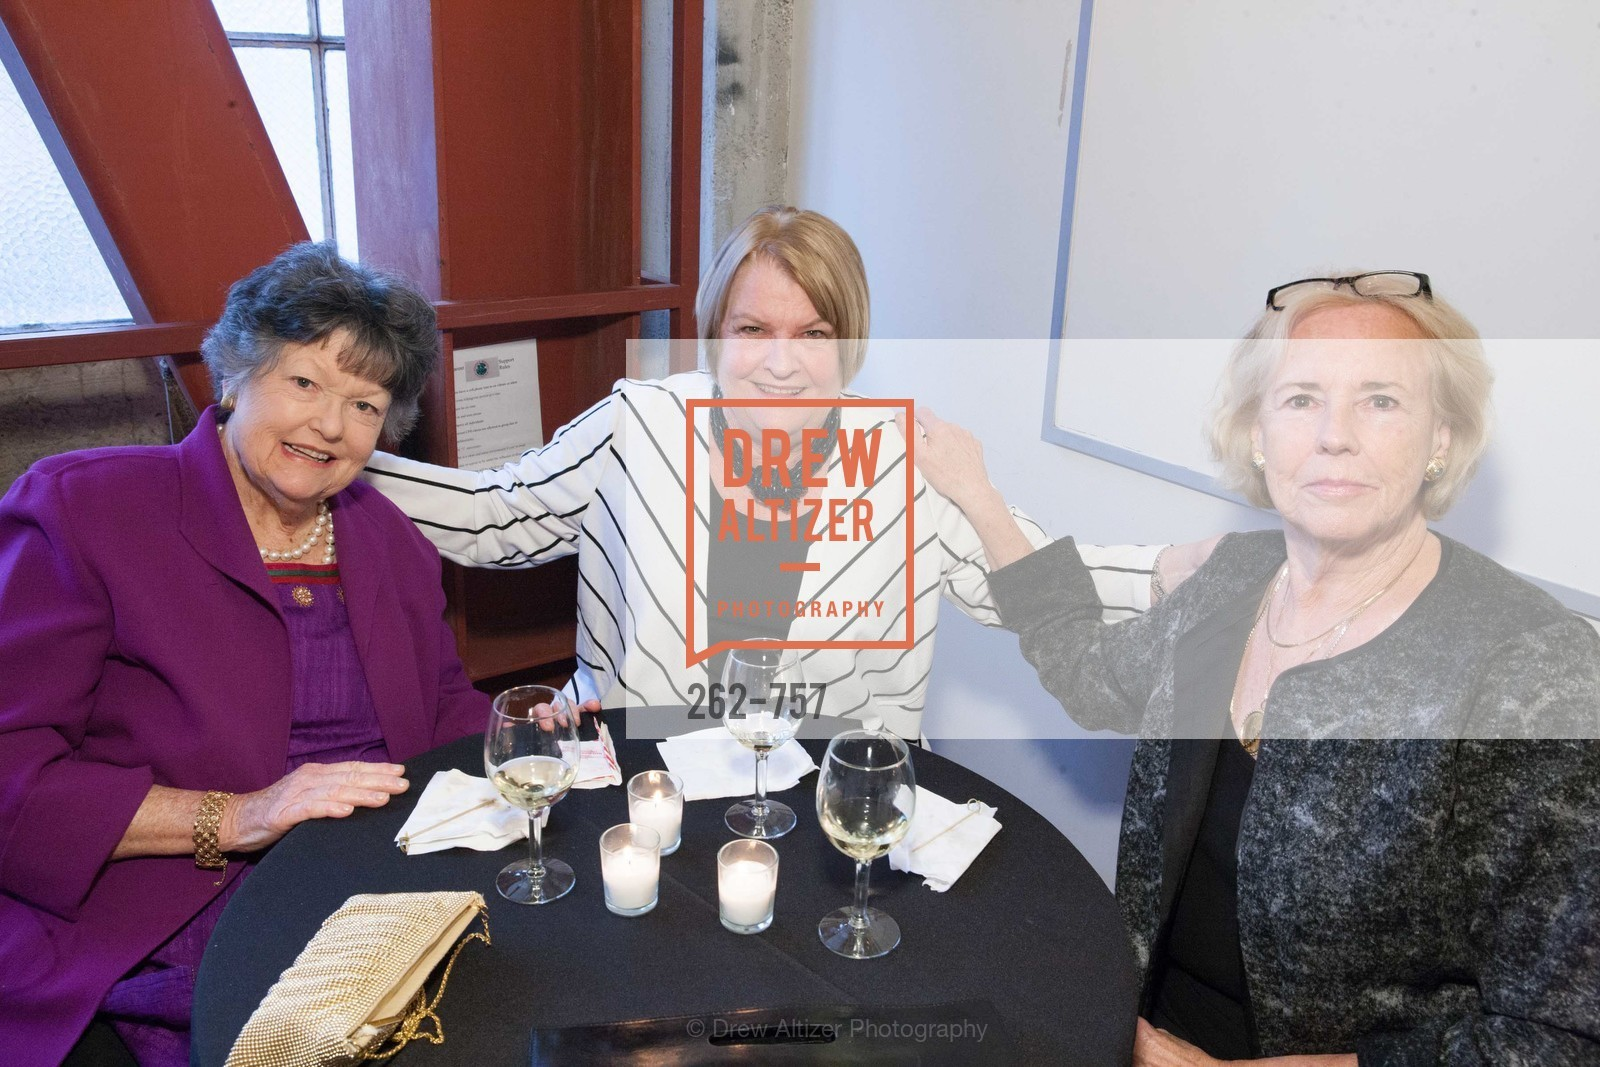 Moira Kimball, Peggy Dougherty, Helen Hughes, HOMELESS PRENATAL PROGRAM Our House, Our Mission Gala, US, May 30th, 2015,Drew Altizer, Drew Altizer Photography, full-service agency, private events, San Francisco photographer, photographer california